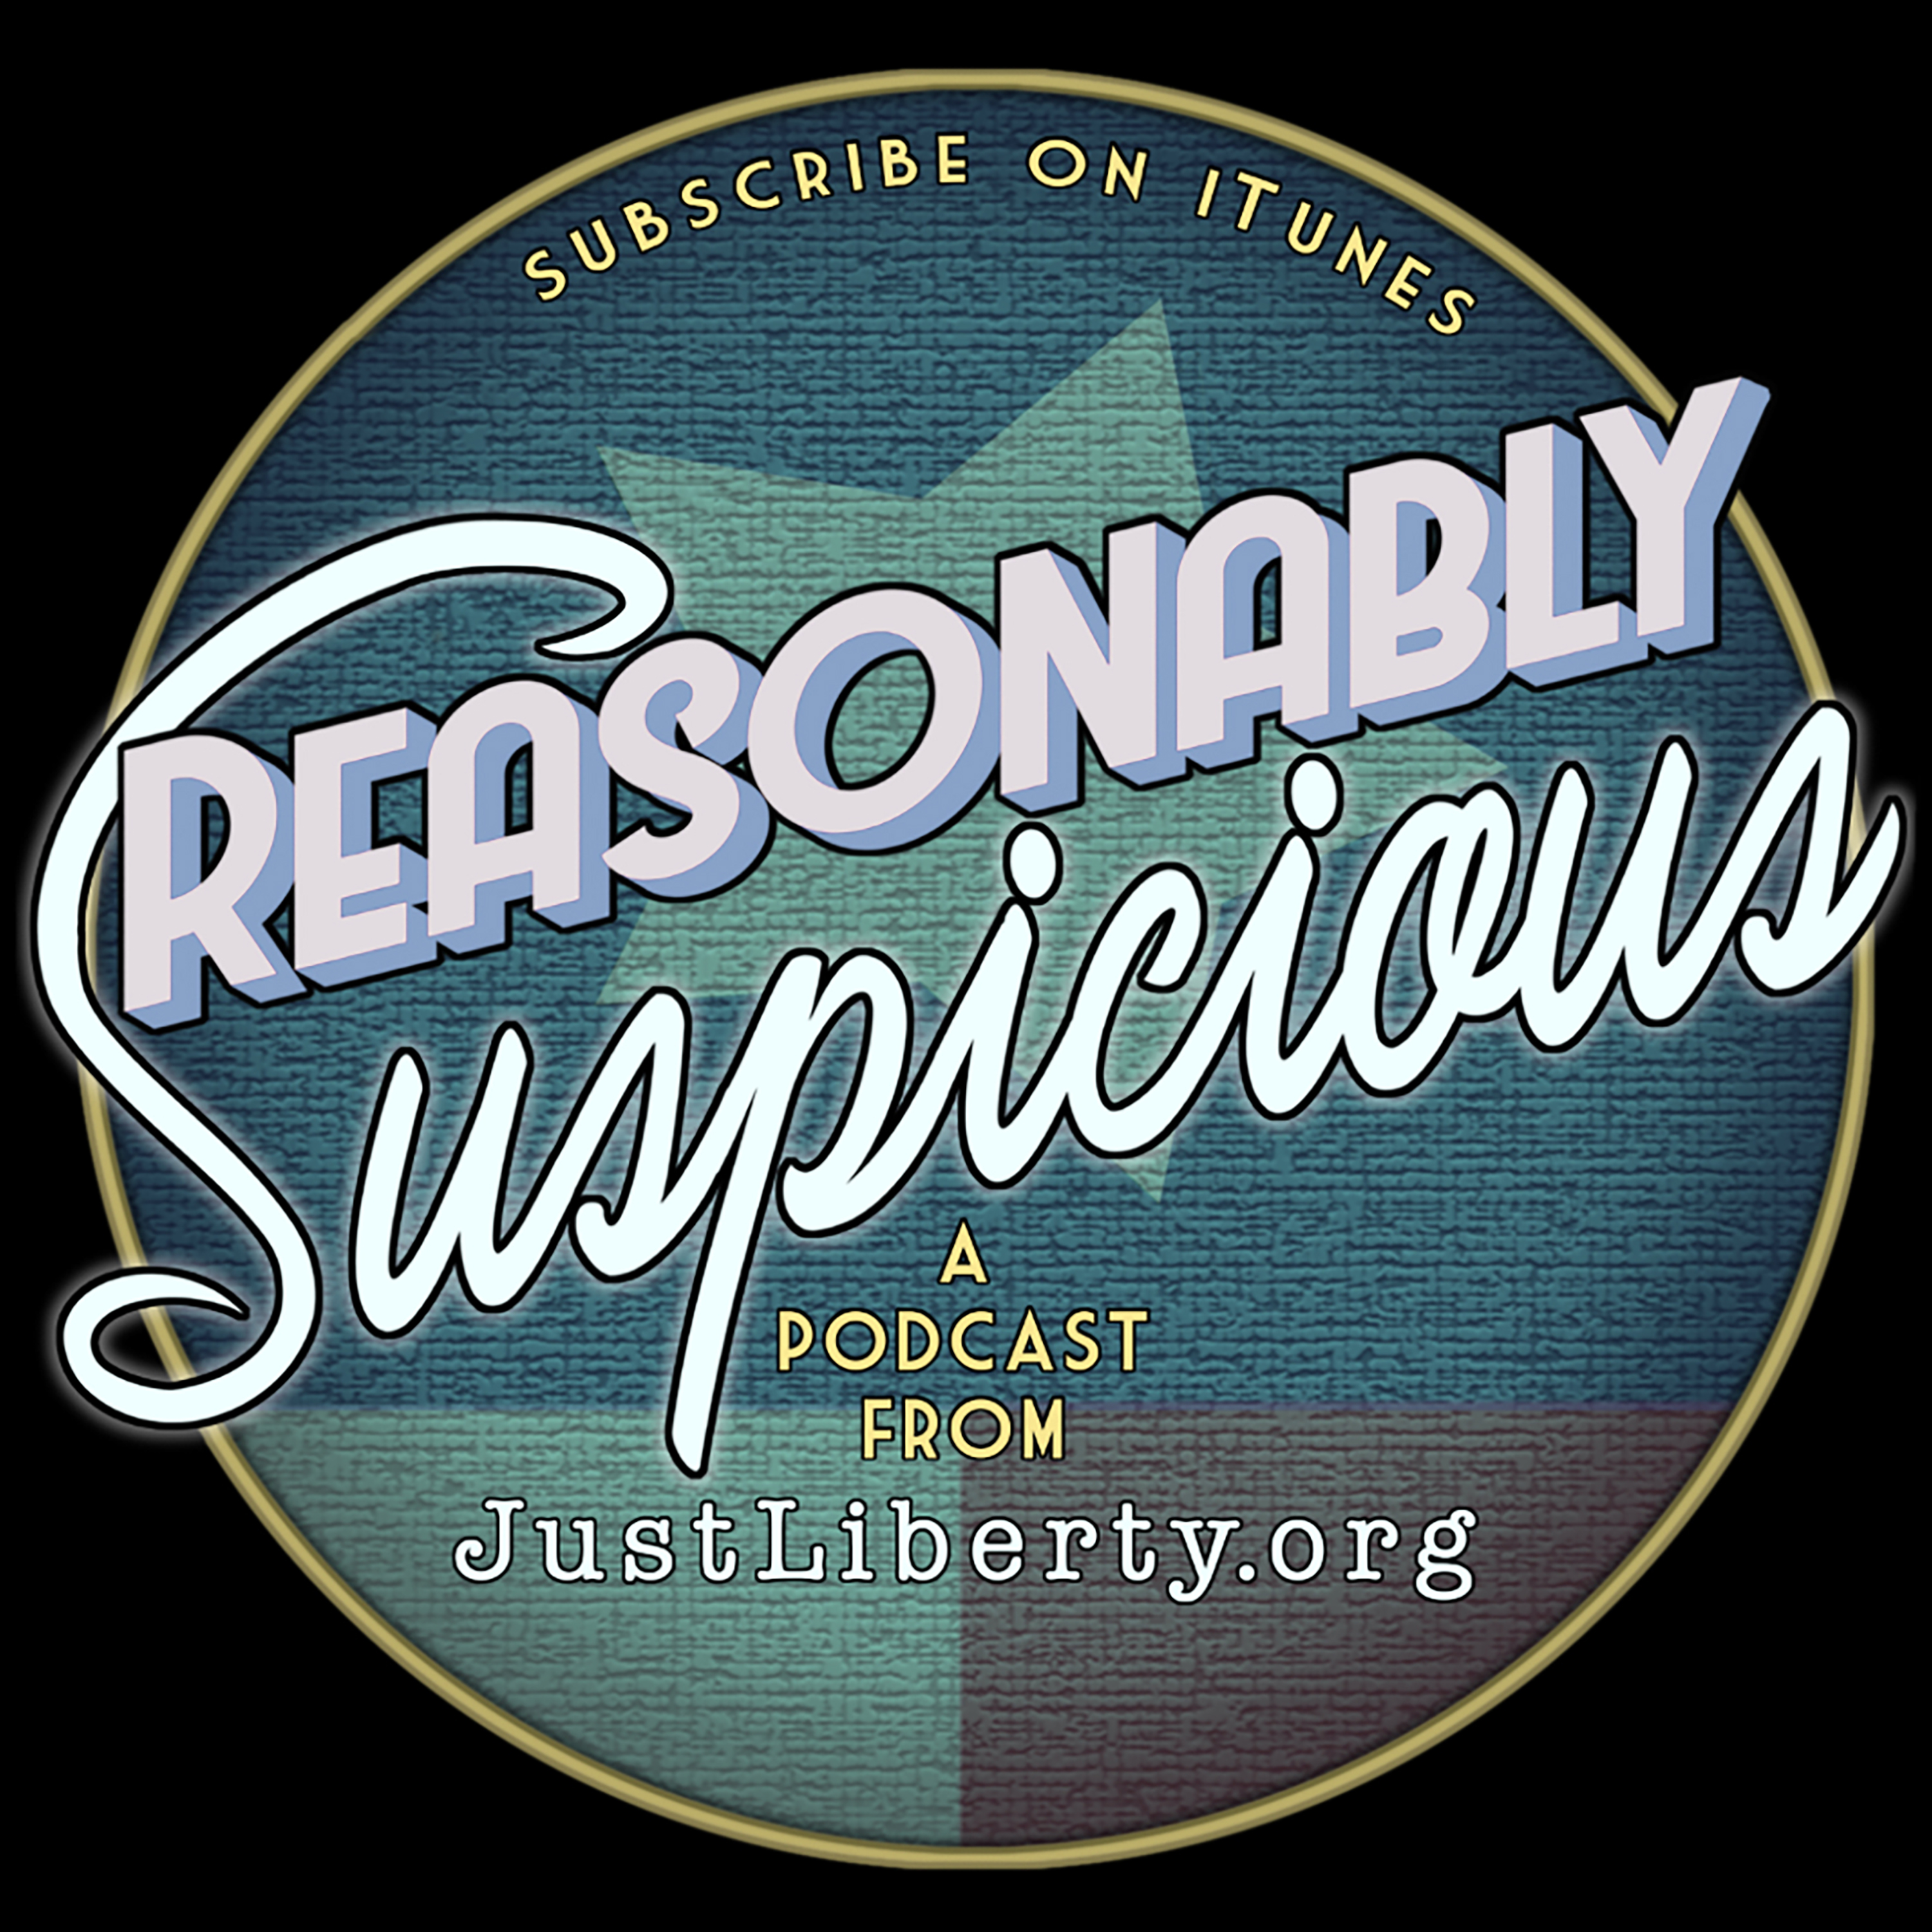 Reasonably Suspicious Christmas episode: The Grinch story  if the Whos were us,  plus the policy failure of high fines, examining recent innocence cases, and reviewing Texas  biggest criminal-justice stories of 2019